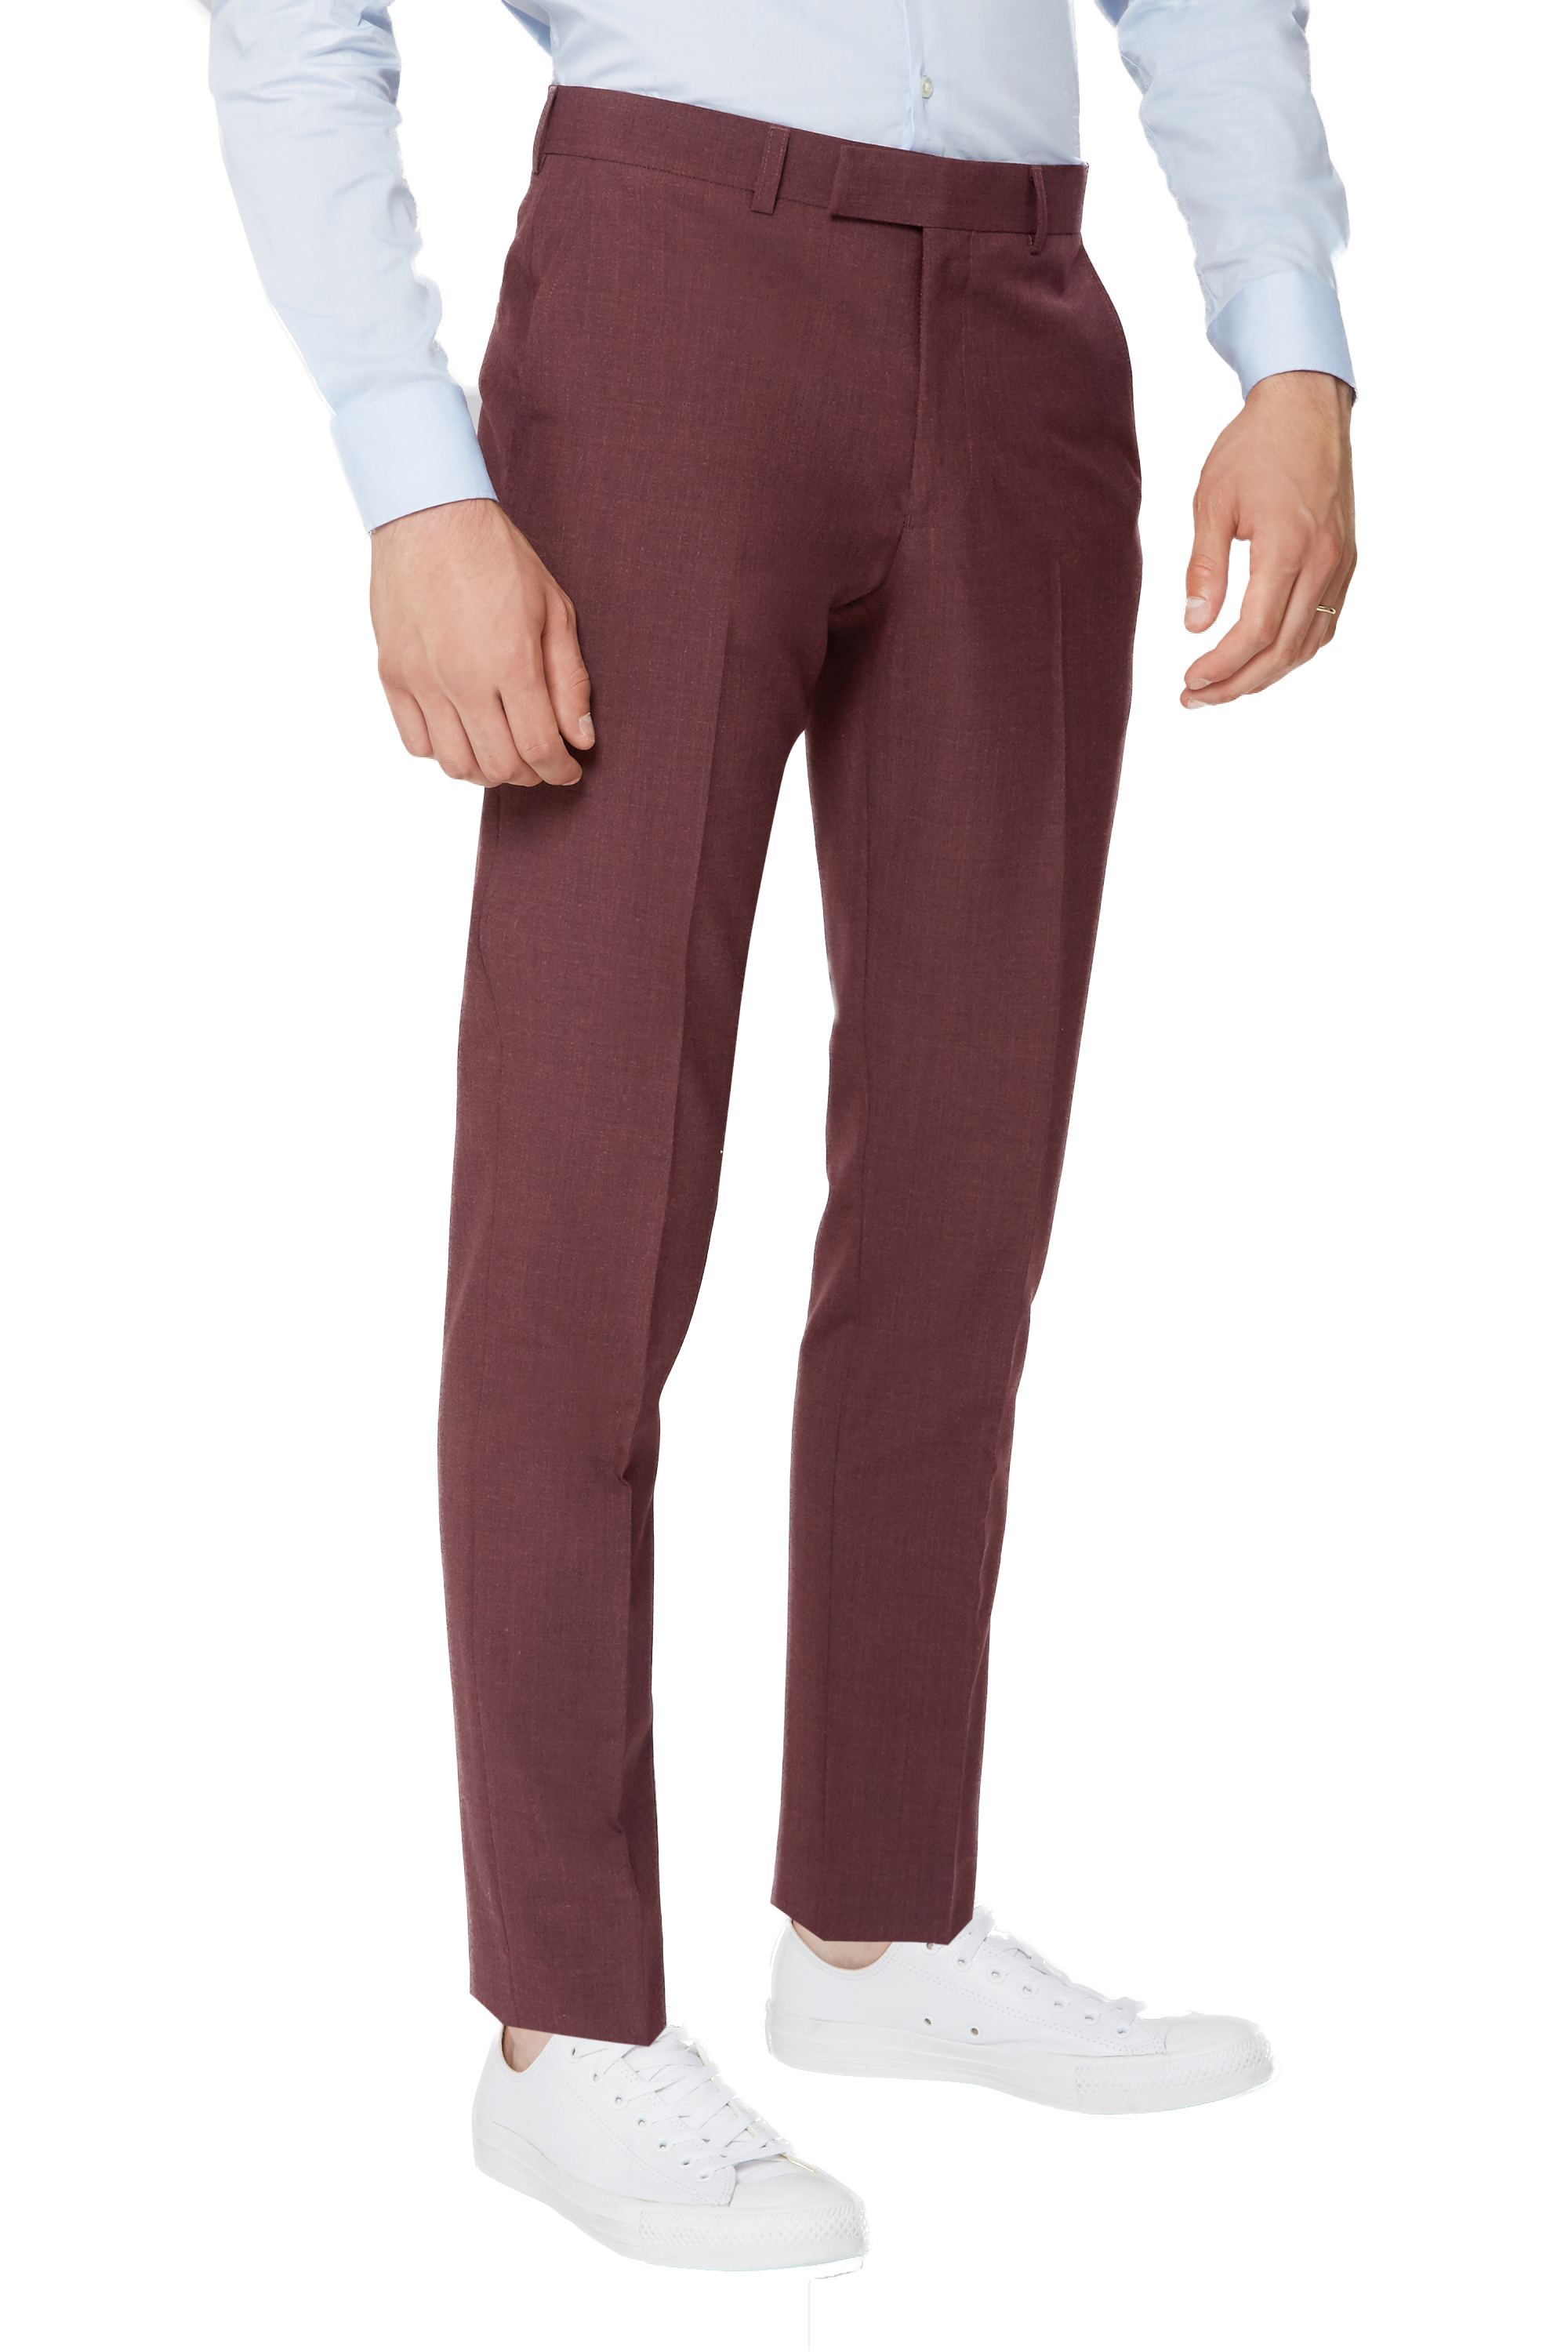 862c8f07482 Details about Moss London Mens Skinny Fit Brick Red Suit Trousers Half  Lined Mix   Match Pants